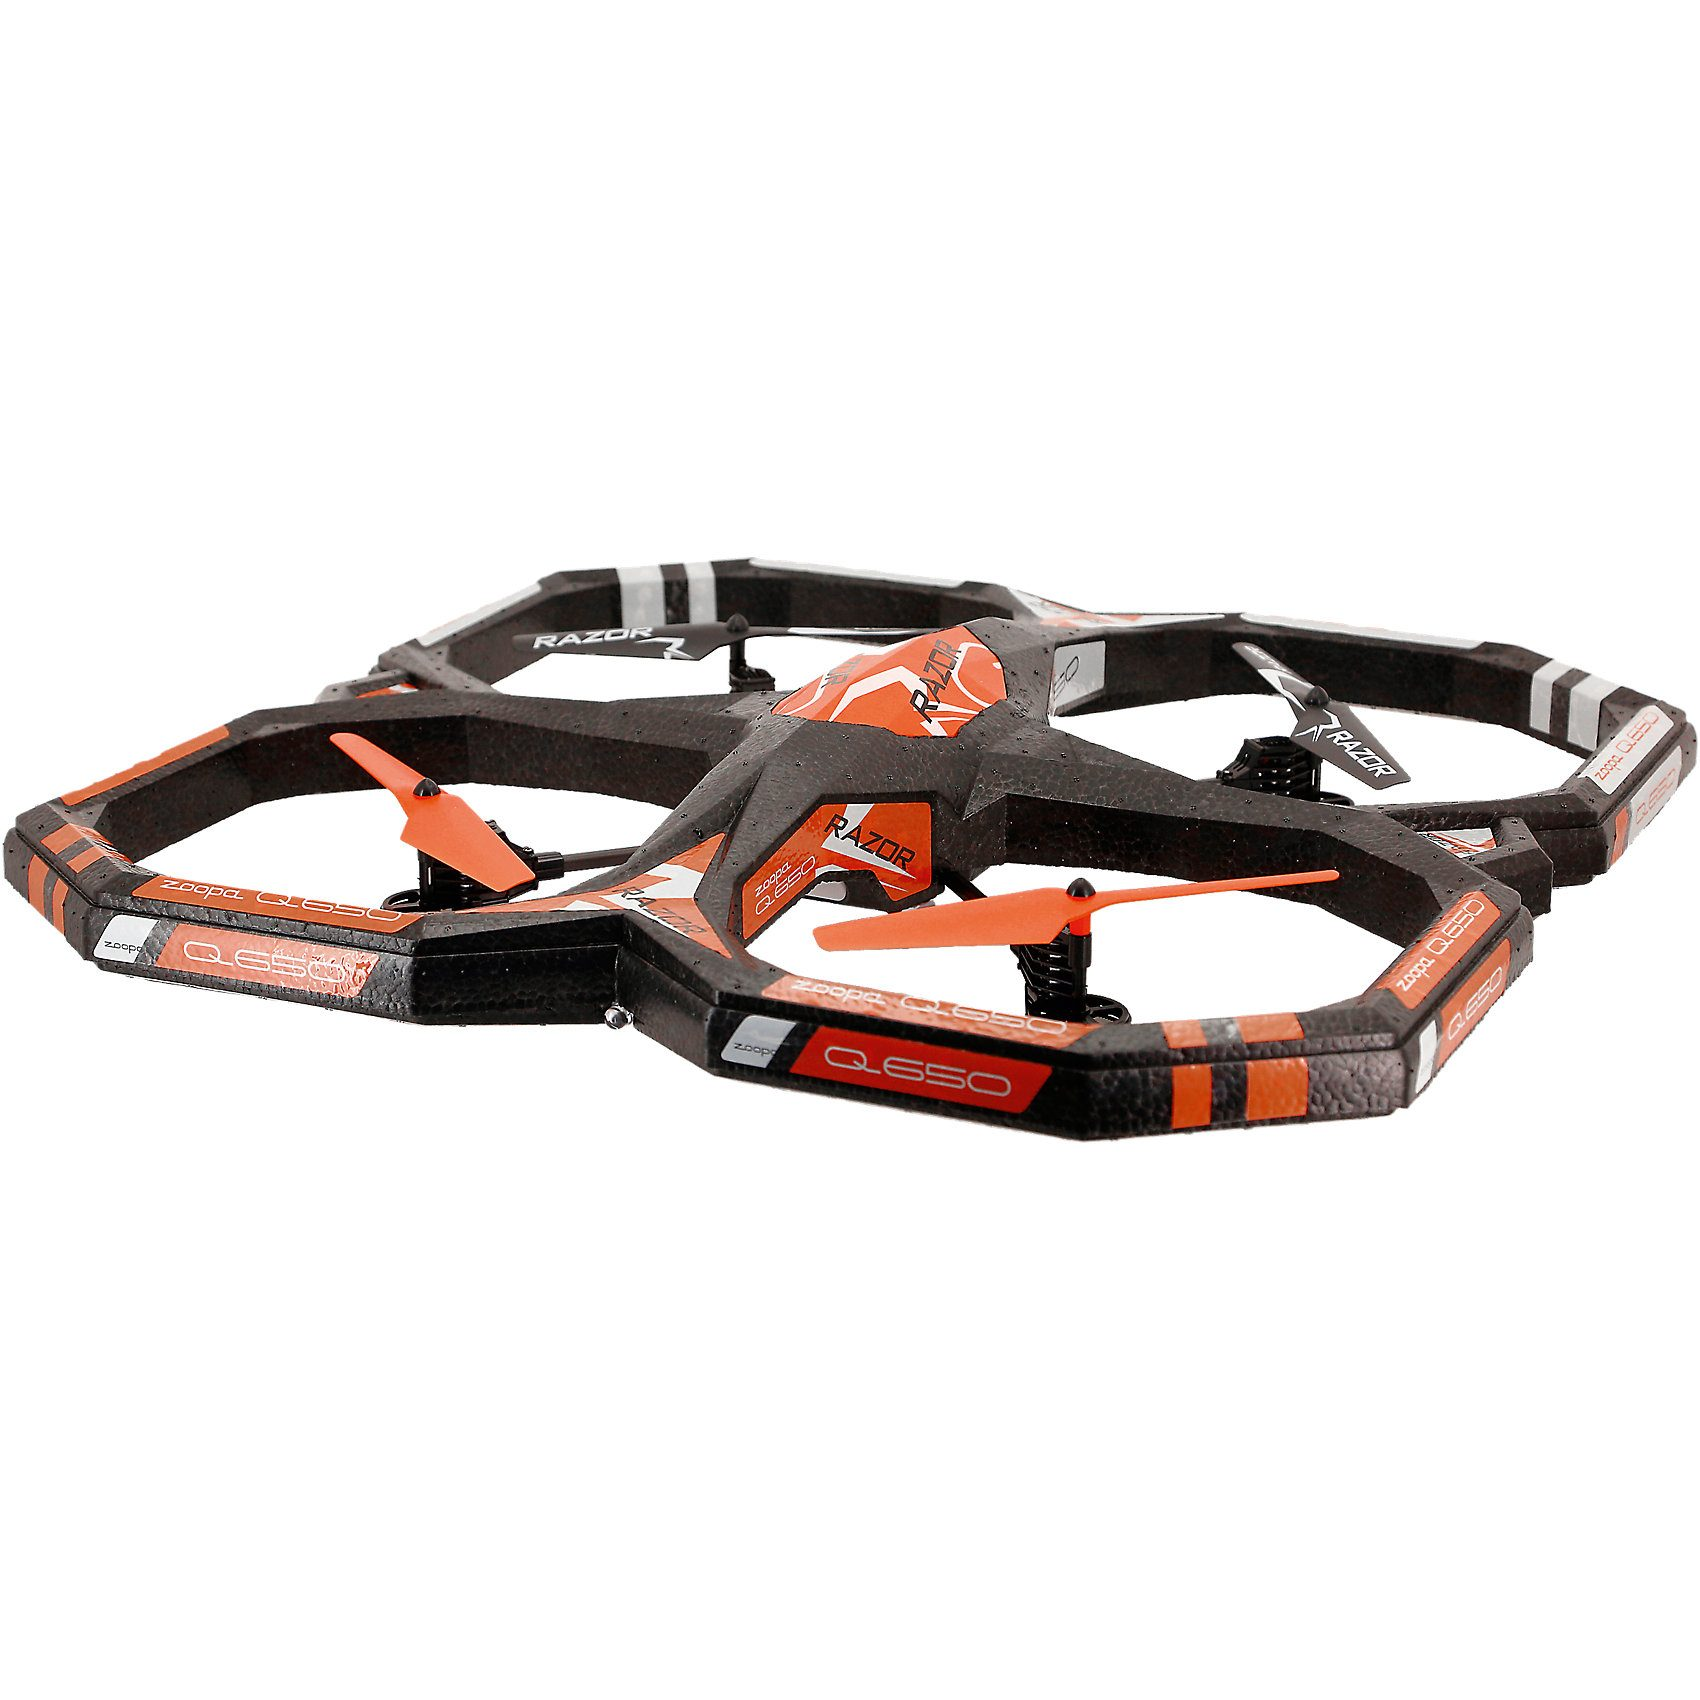 ACME RC Quadrocopter zoopa Q 650 razor